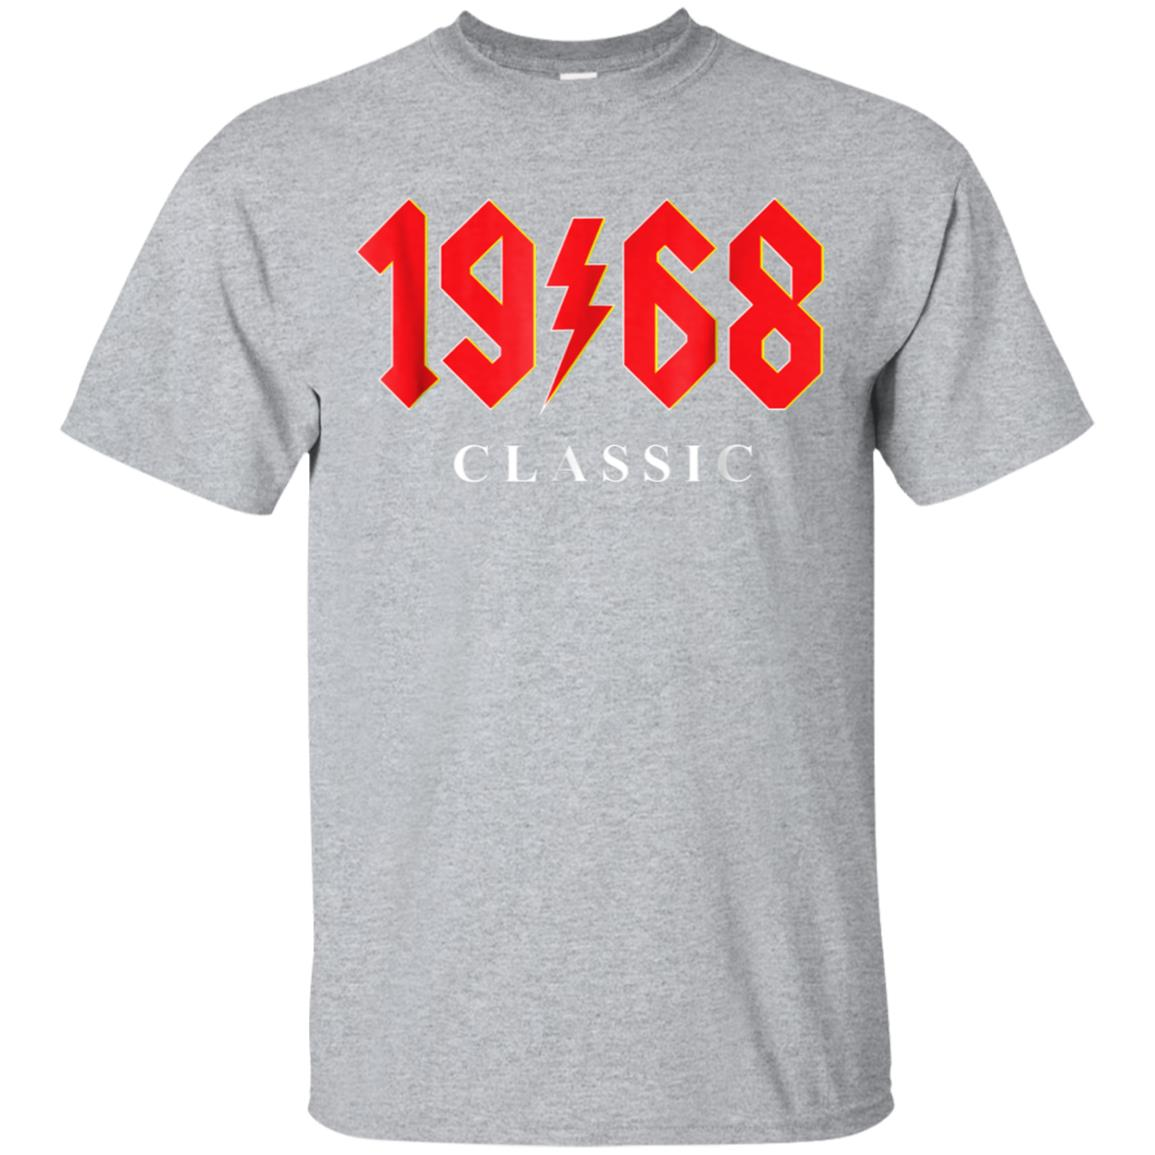 1968 Classic Rock 50th Birthday Gift T Shirt 99promocode